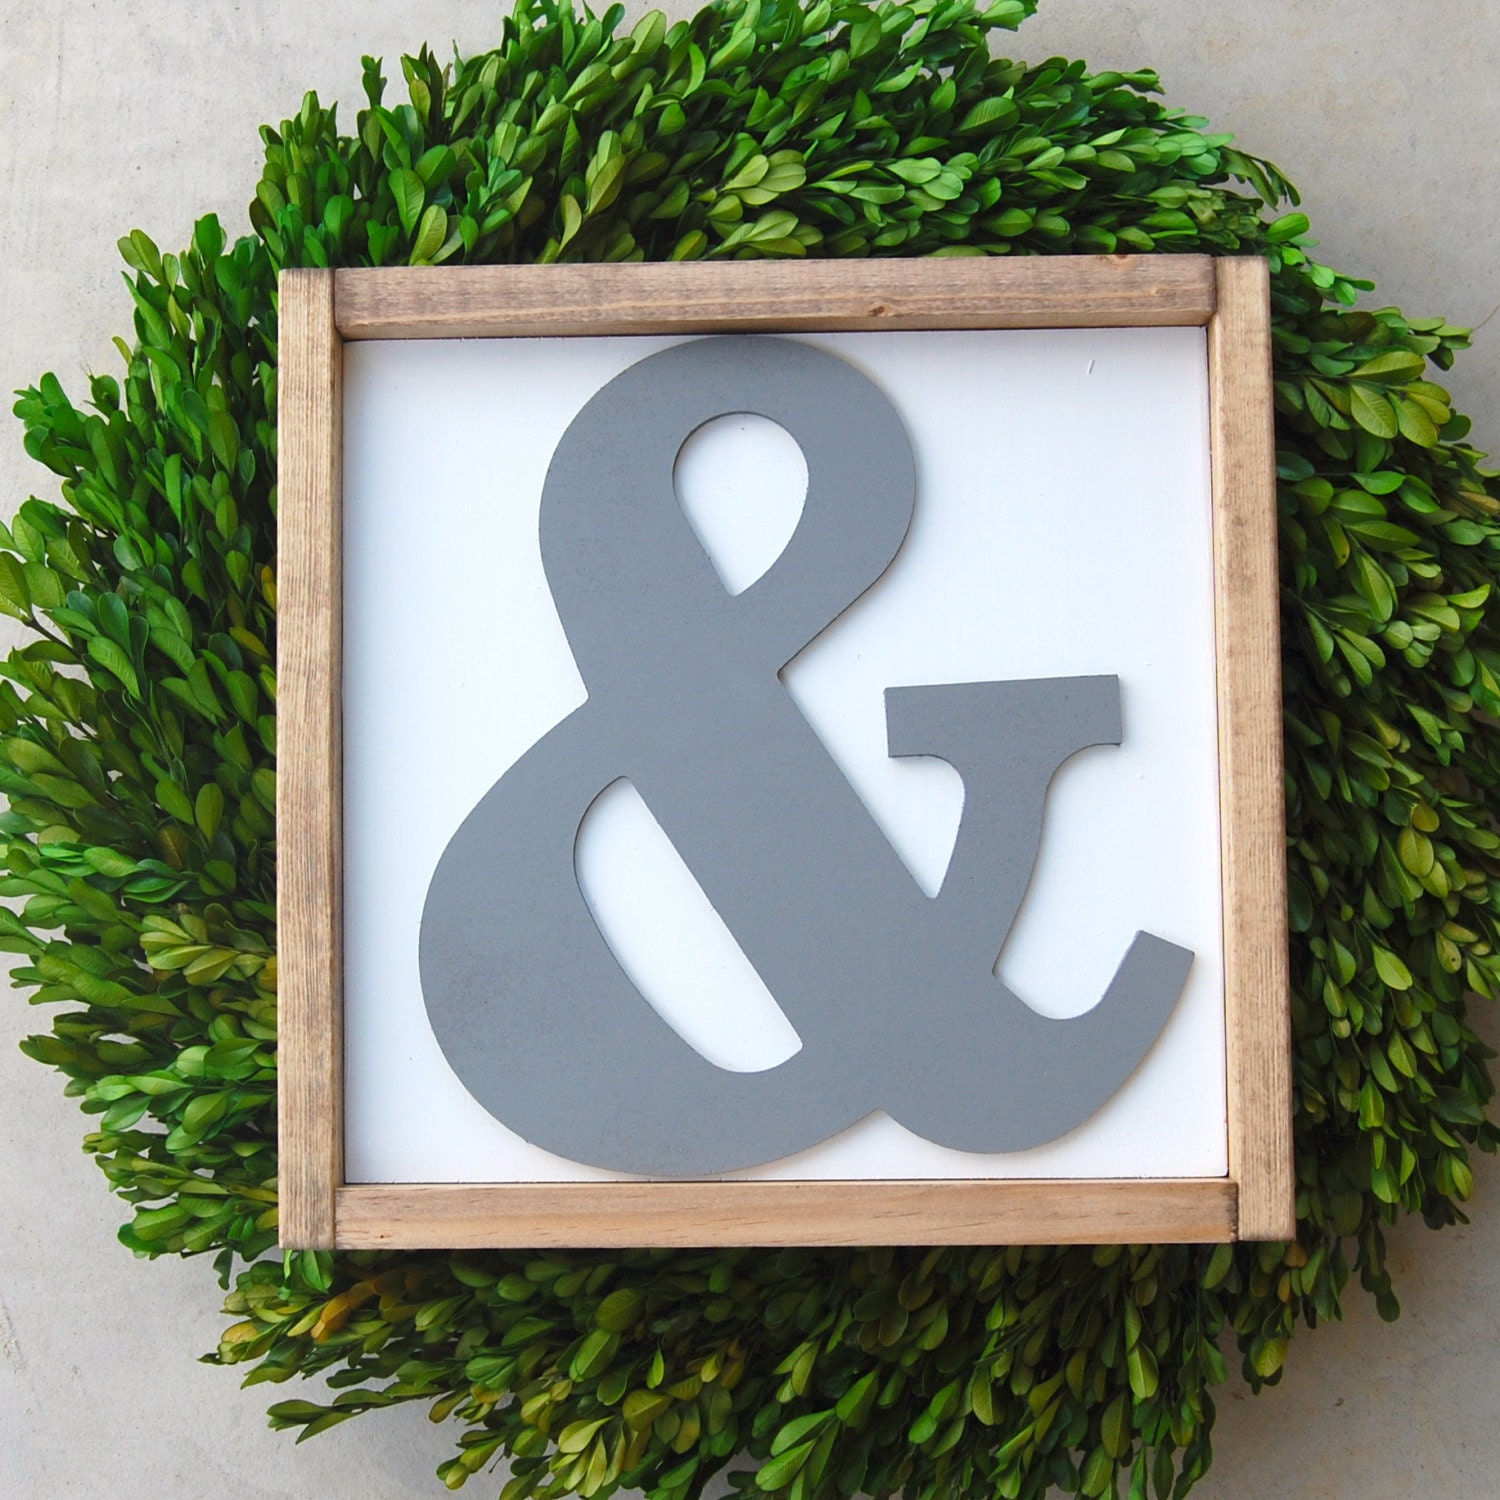 Large ampersand cutout framed wood sign home decor for Ampersand decor